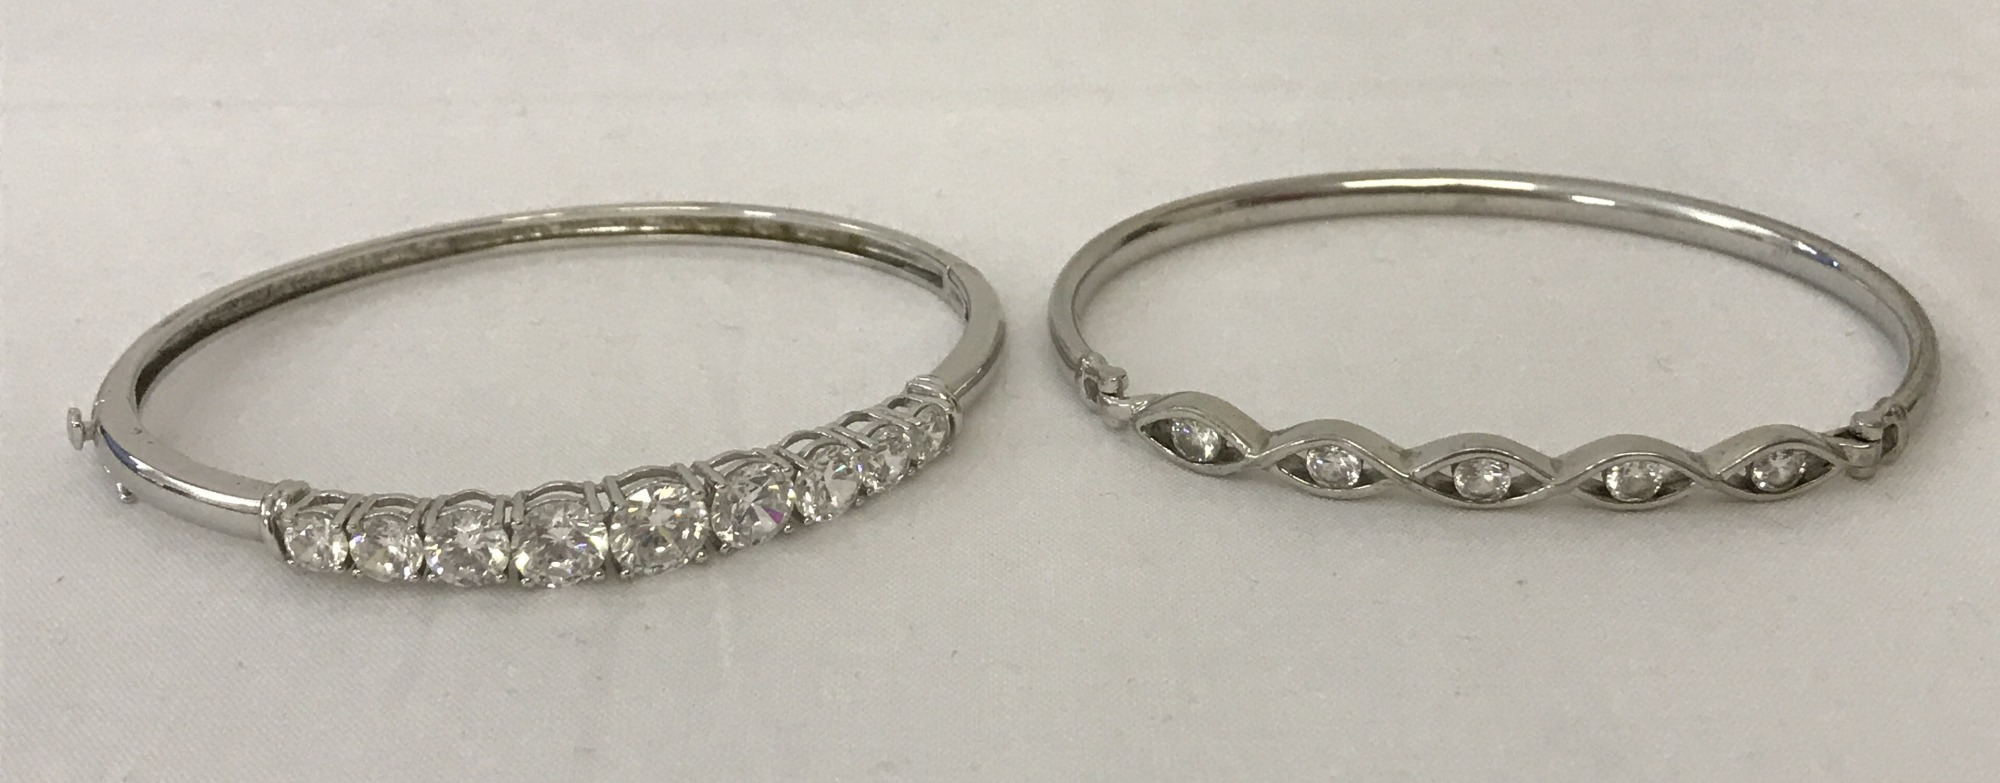 2 ladies silver bangles both set with cubic zirconia stones.